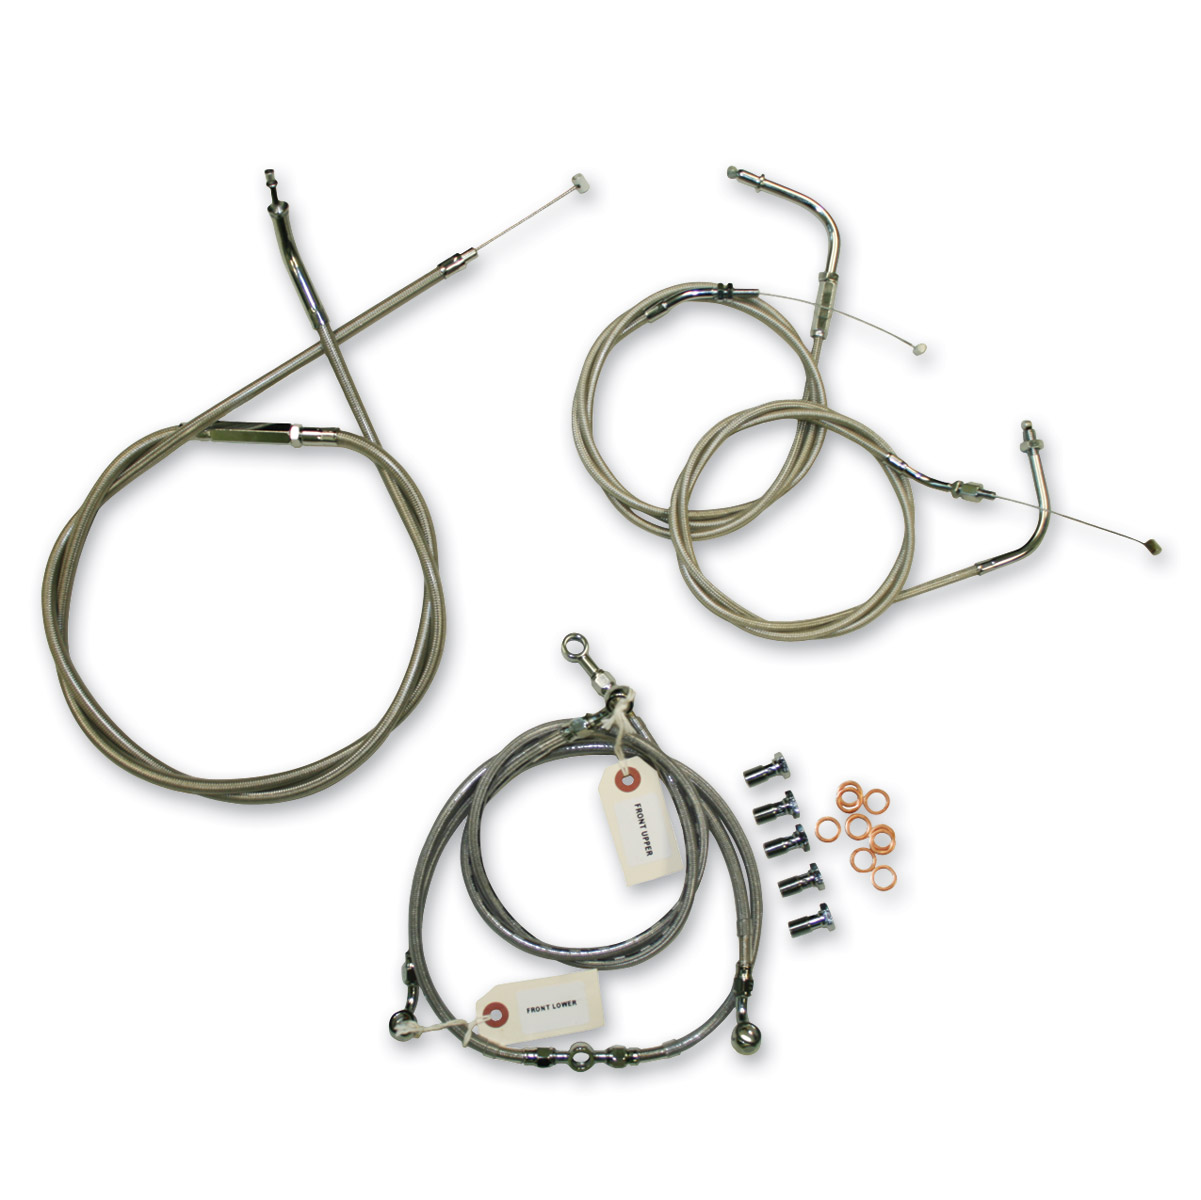 LA Choppers Stainless Cable/Brake Line Kit for 15″-17″ Bars